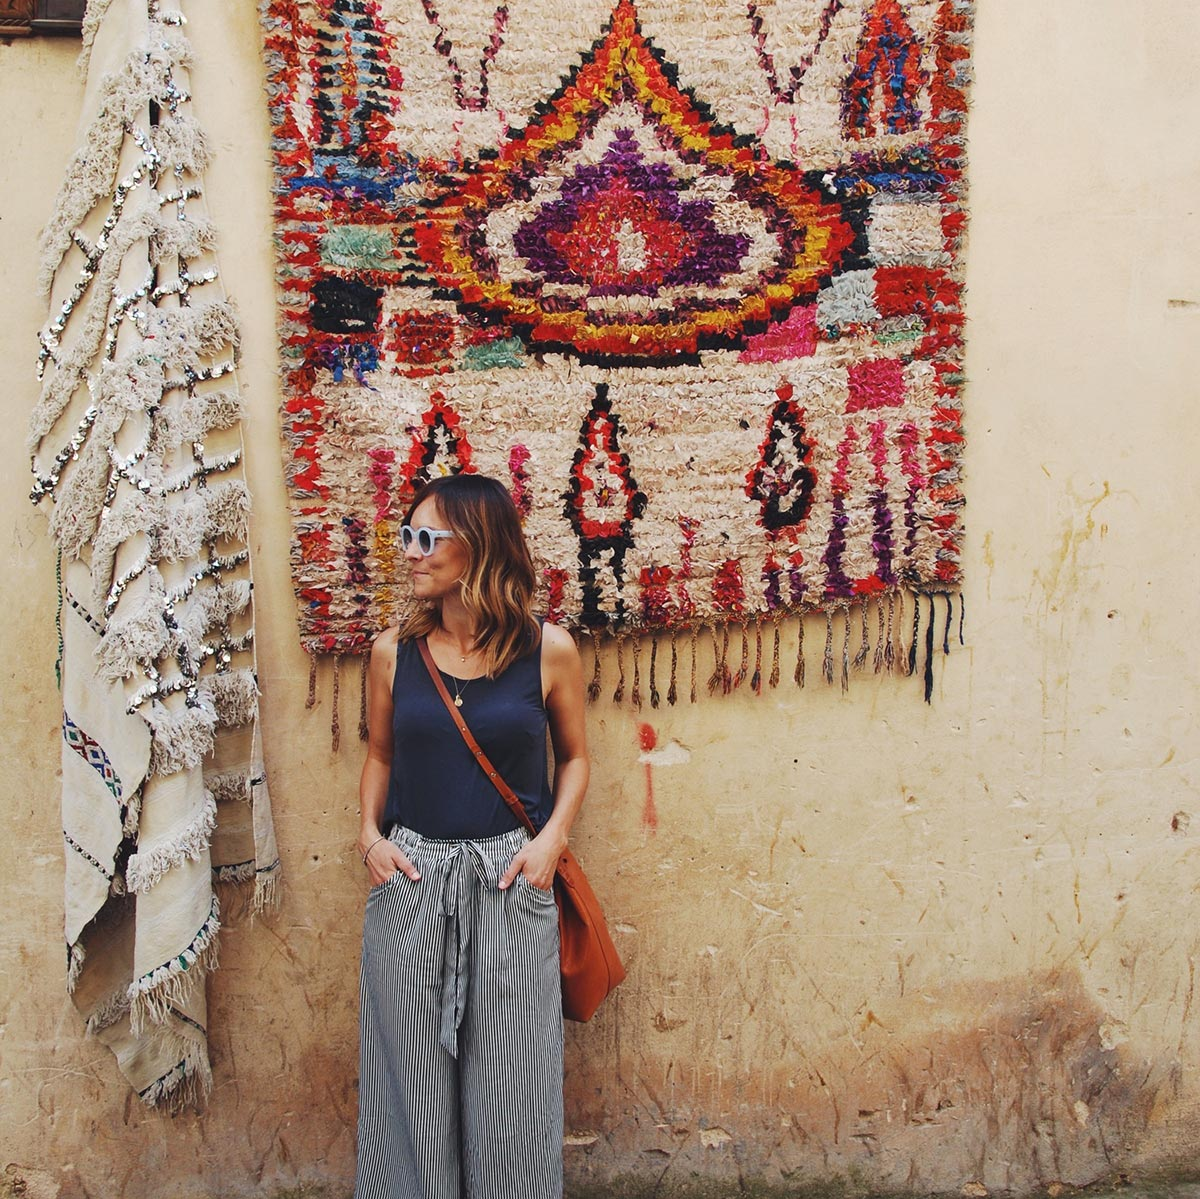 Woman posing next to rug on dirty wall